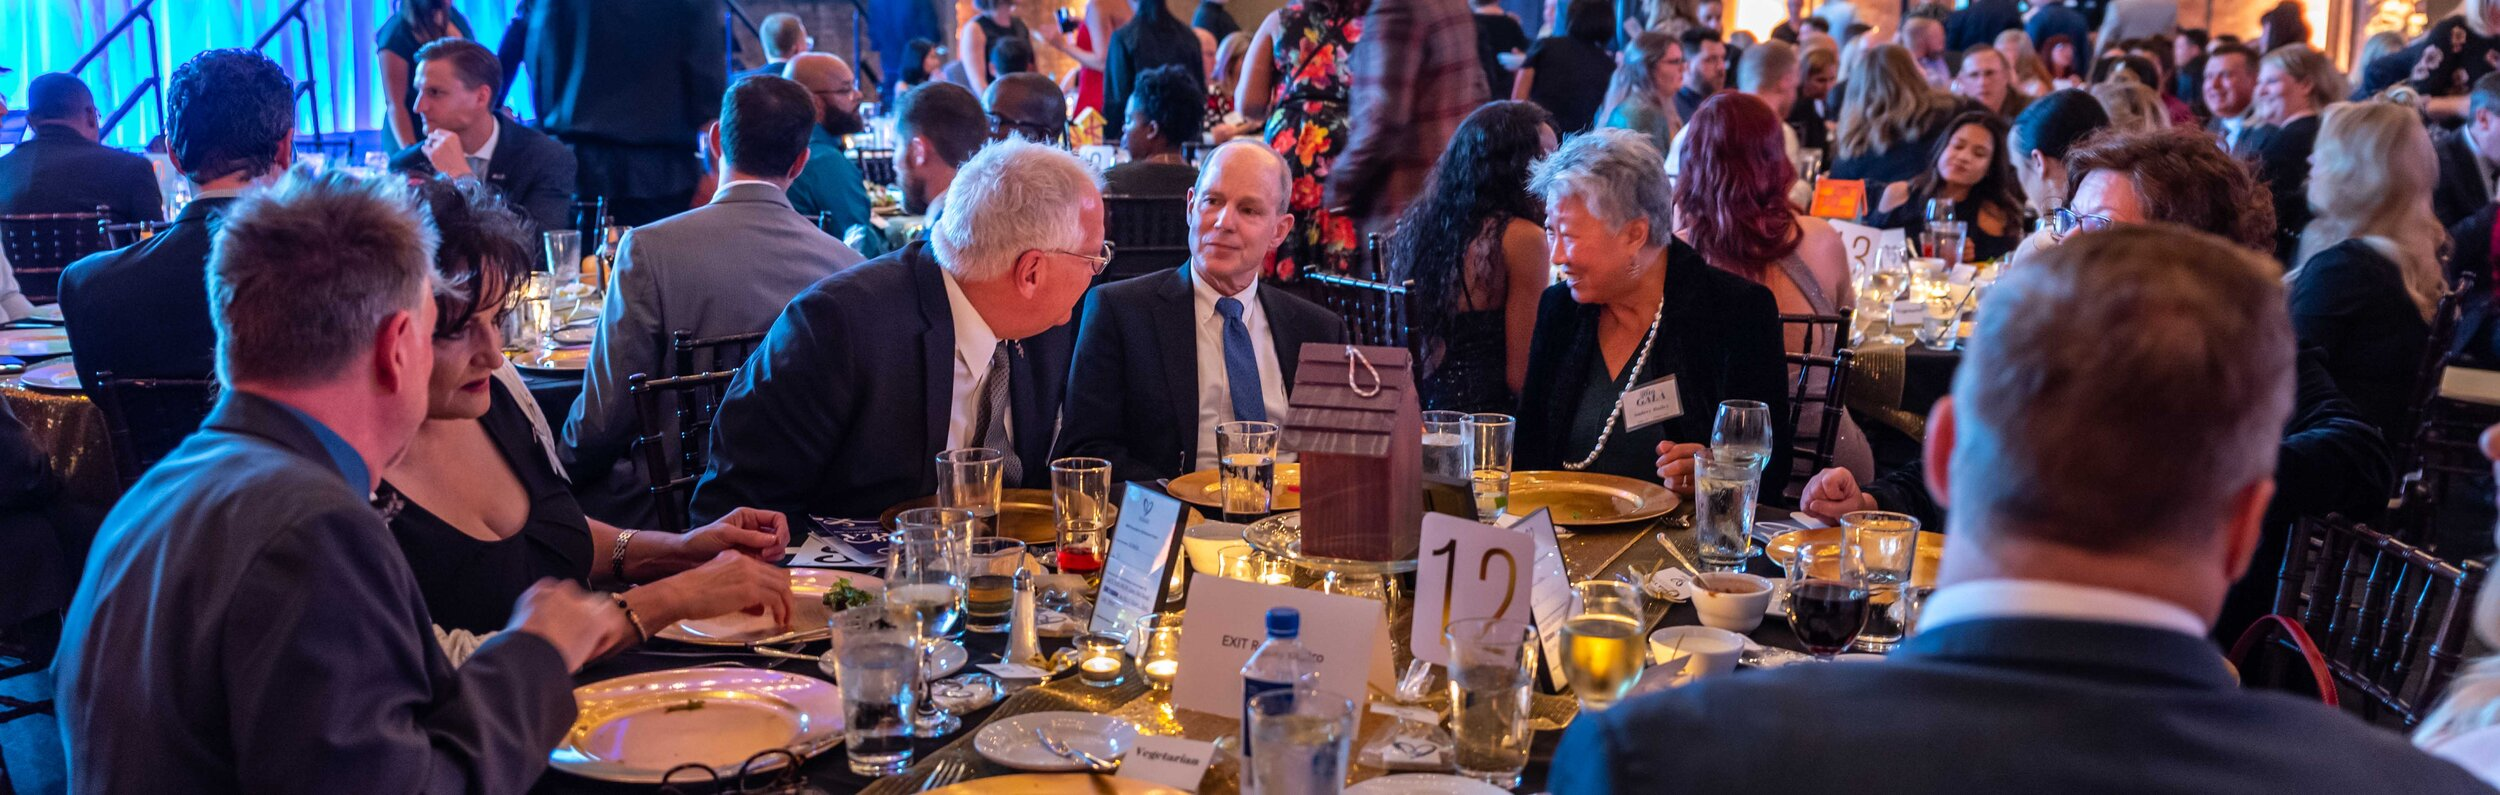 MAR Foundation Gala 2019-2818.jpg